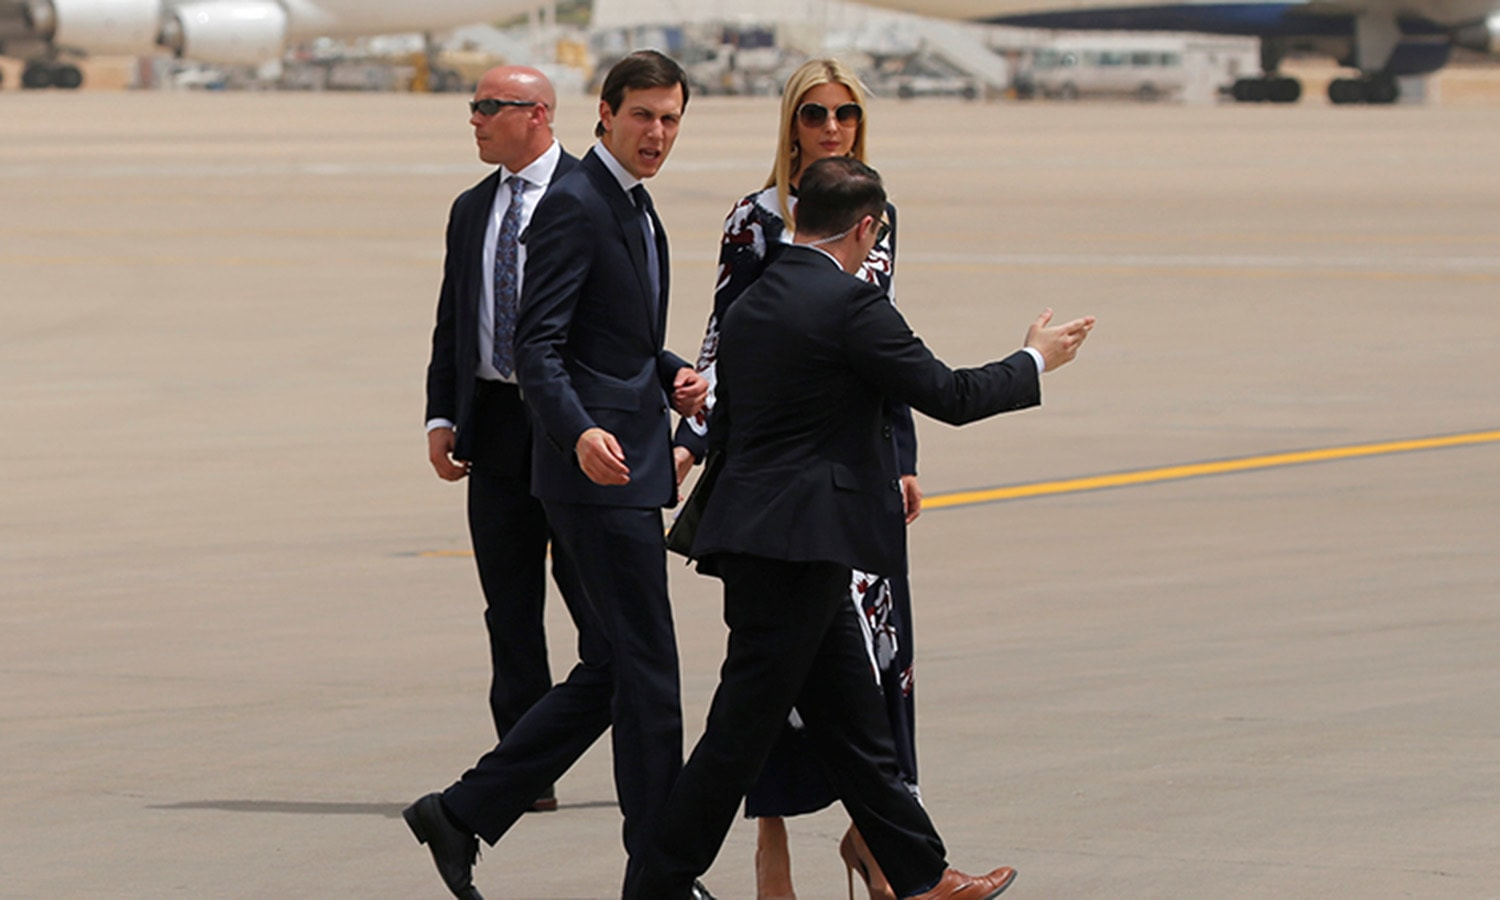 White House senior advisor Jared Kushner and his wife US first daughter Ivanka Trump being escorted by Saudi officials at the airport. ─ Reuters